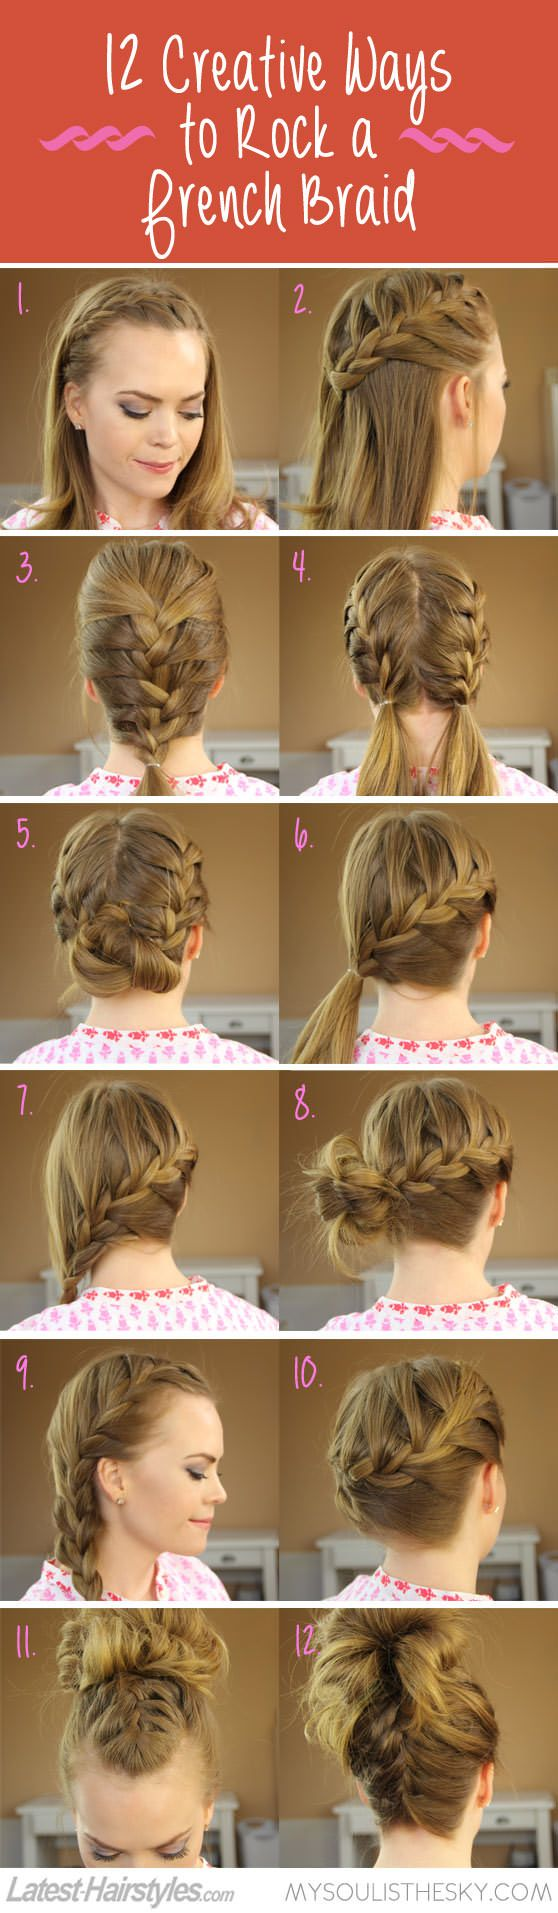 Best 25 how to french braid ideas on pinterest how to braid 31 braiding hair secrets that just might change your life ccuart Image collections